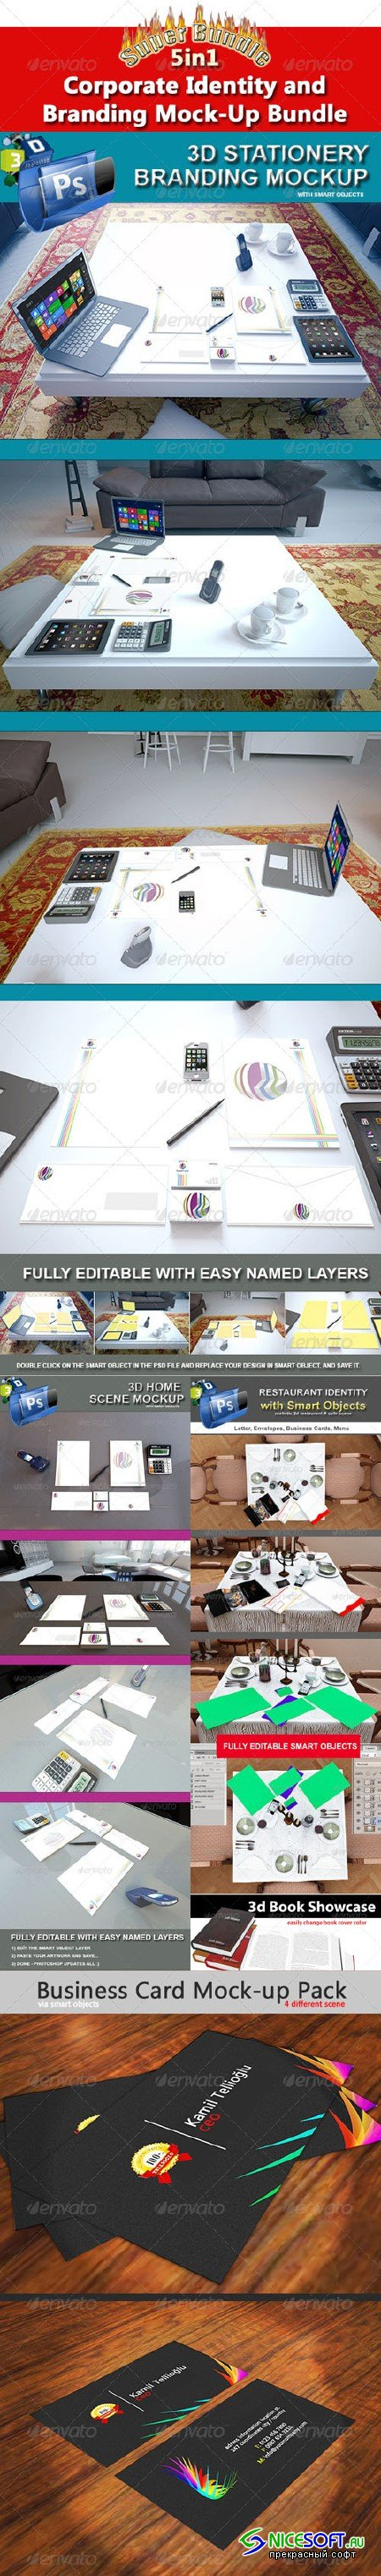 GraphicRiver - Corporate Identity and Branding Mock-Up Bundle 5092397